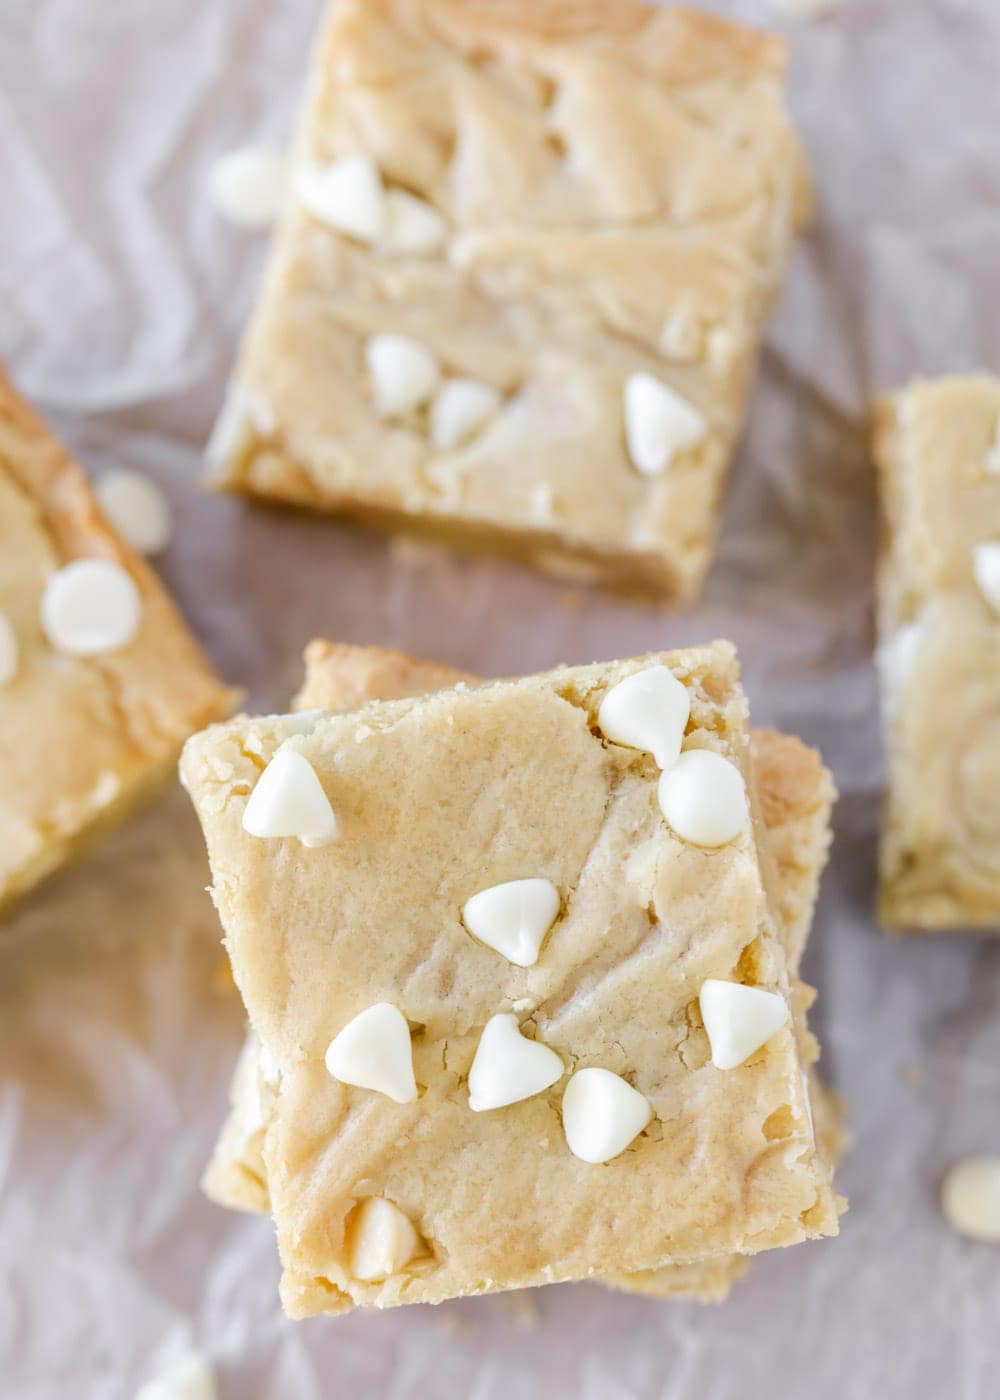 Best blondie recipe stacked on parchment paper